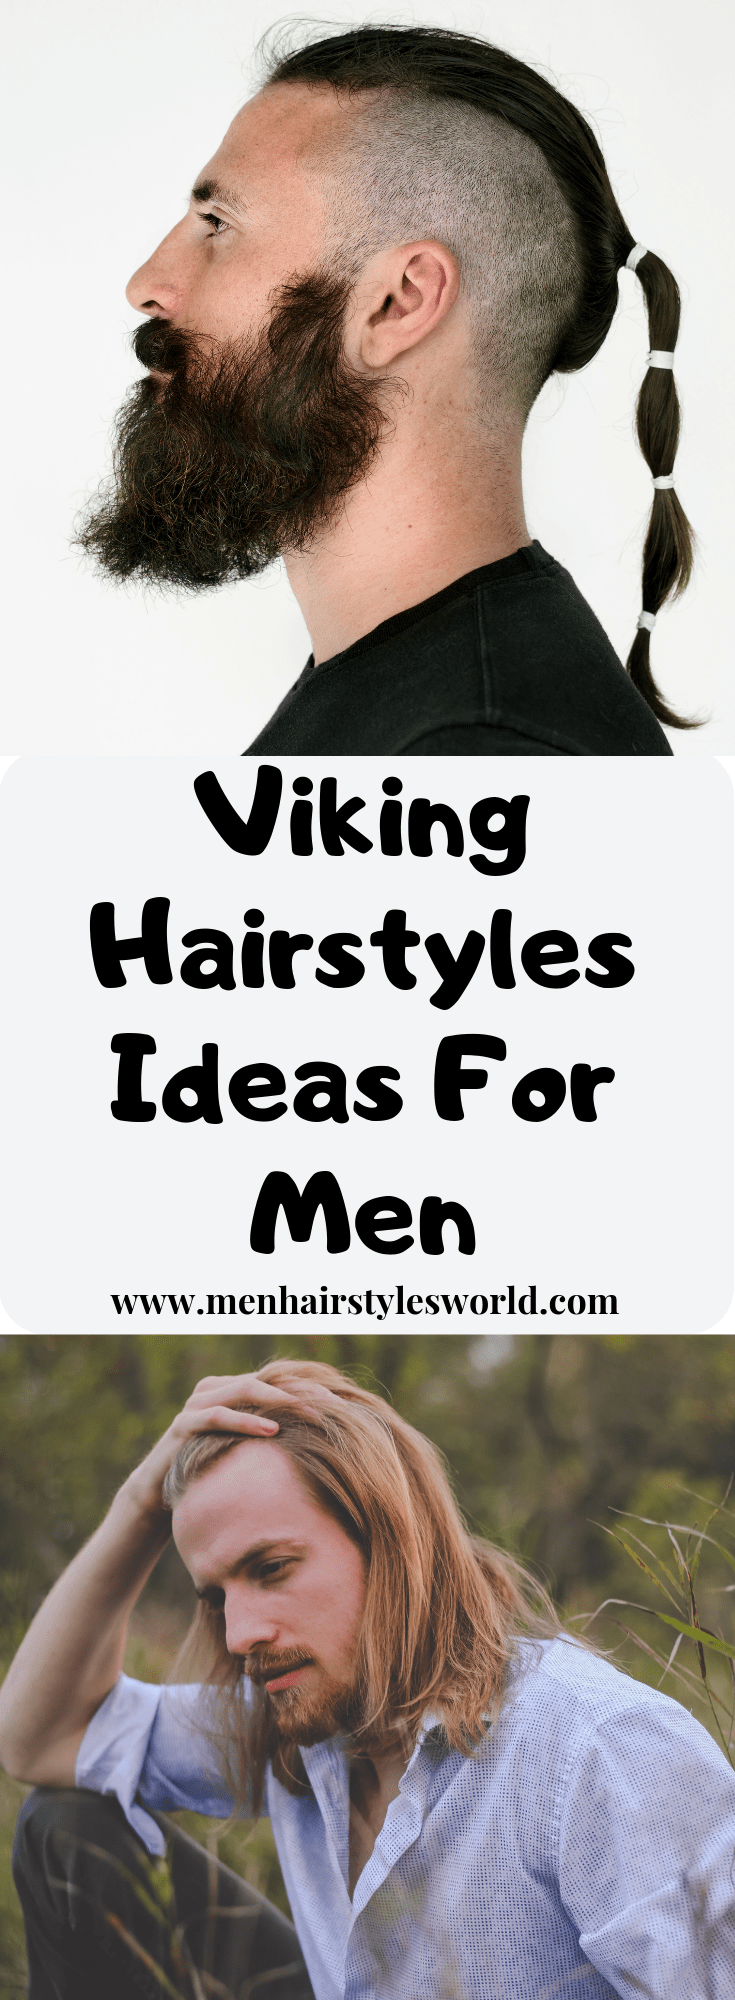 Viking Hairstyles Ideas for Men -   Viking hairstyles for Men